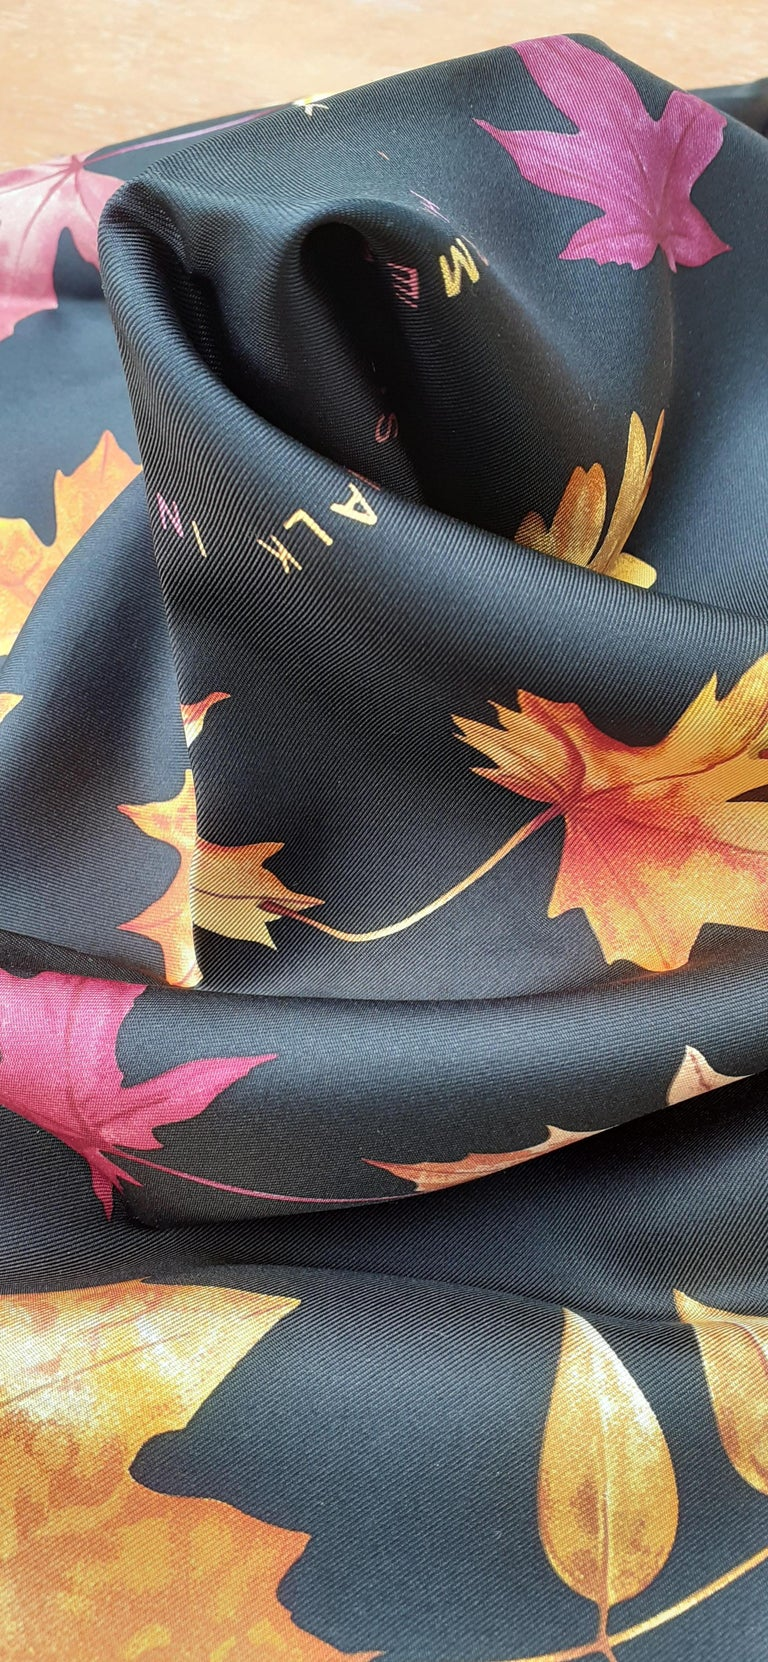 Hermès Silk Scarf A Walk In the Park Leigh P Cooke Leaves Black 90 cm  For Sale 12